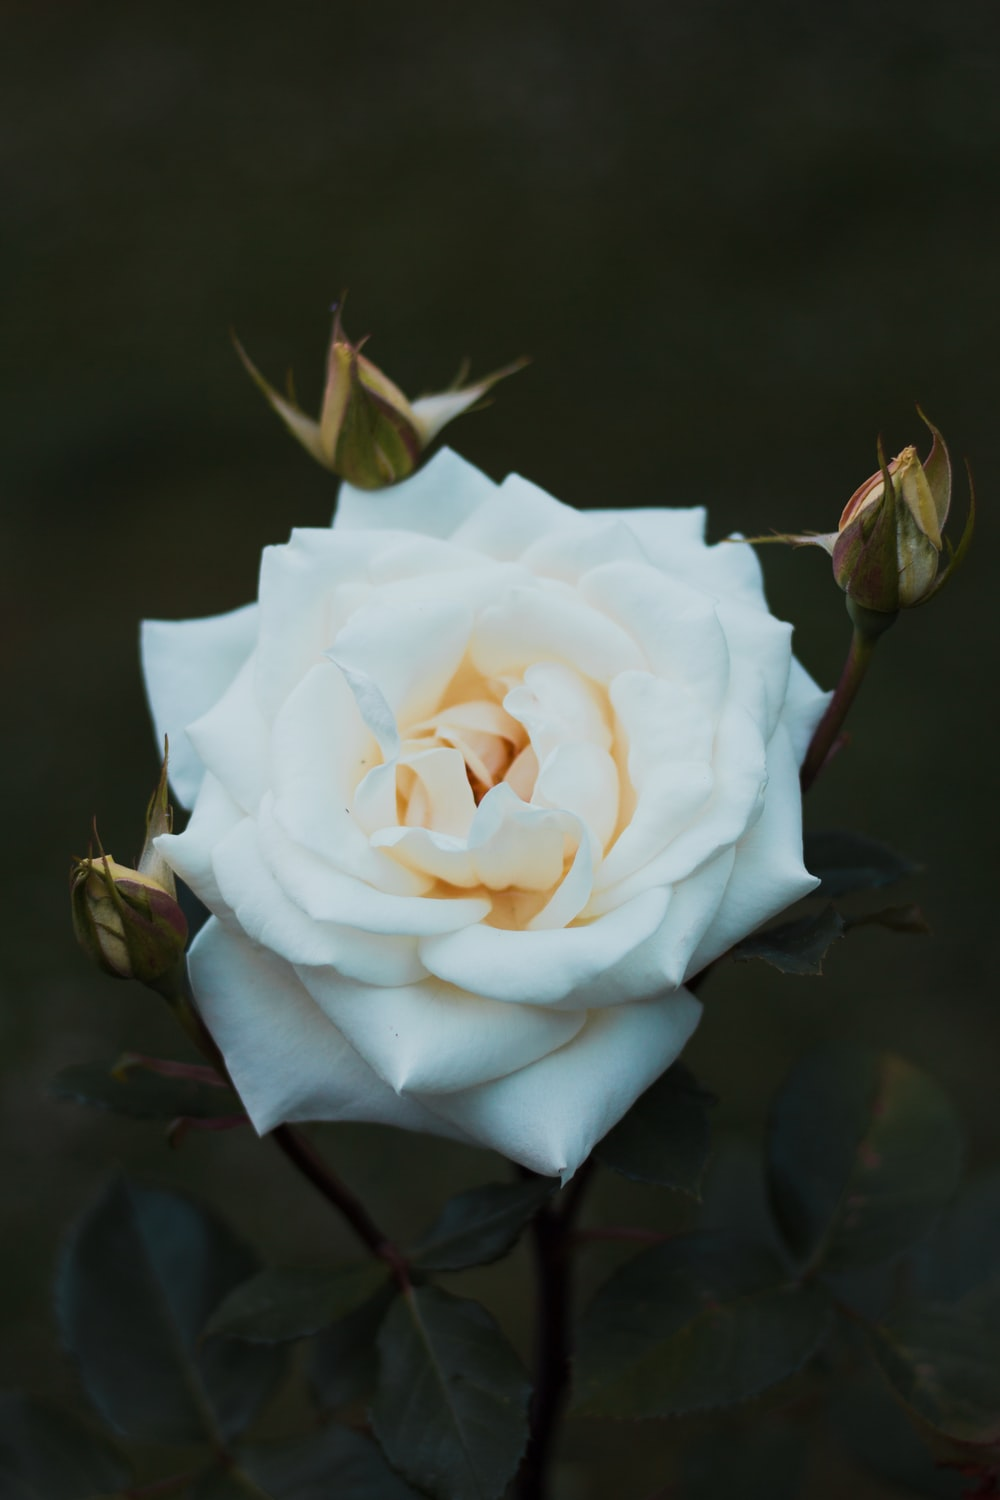 close up photography of white rose flower